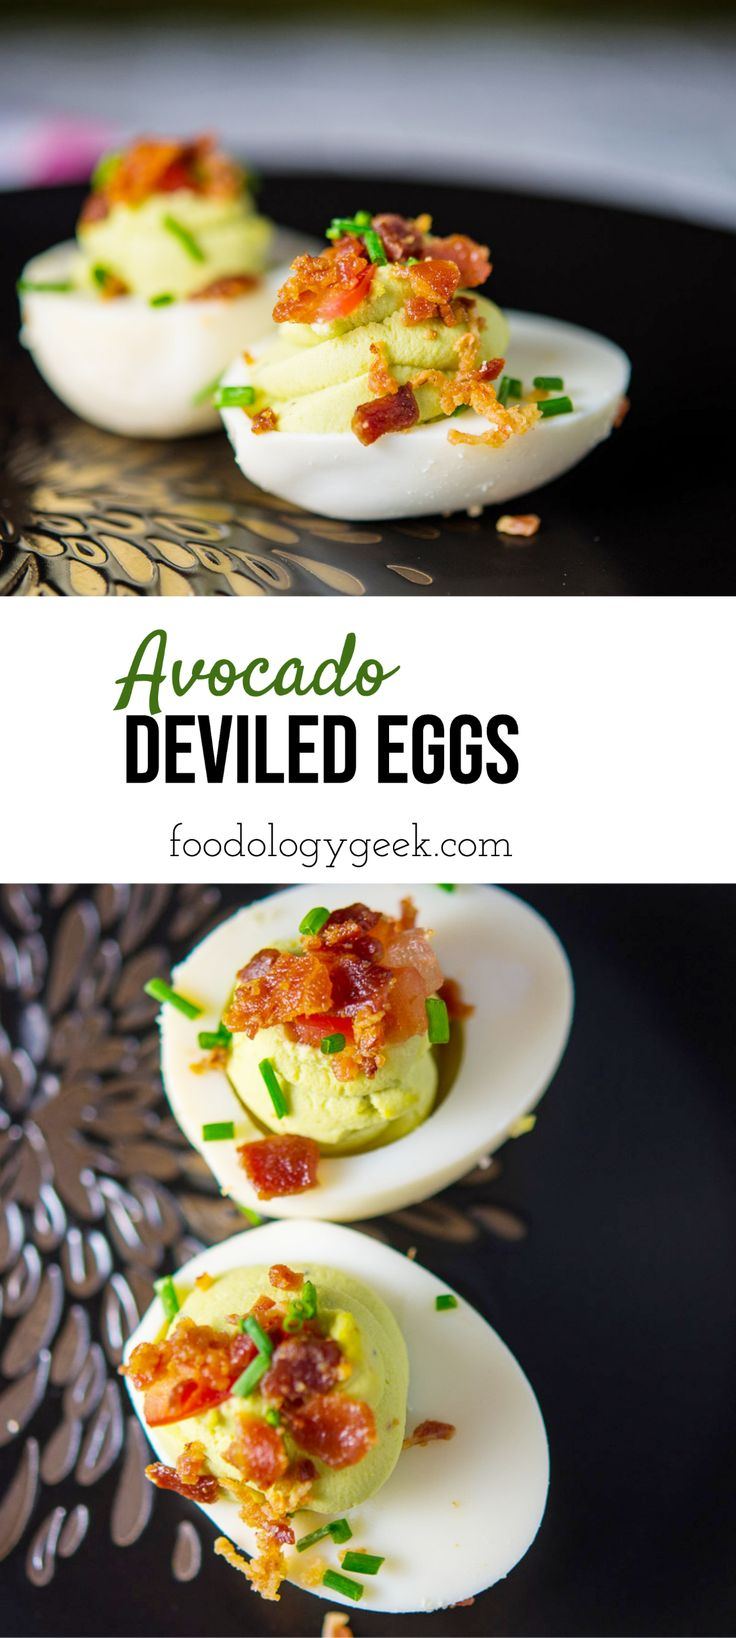 Jun 14, 2020 – Protein and healthy fats in this classic deviled egg recipe. Swap out the mayo for avocado! Top with cris…